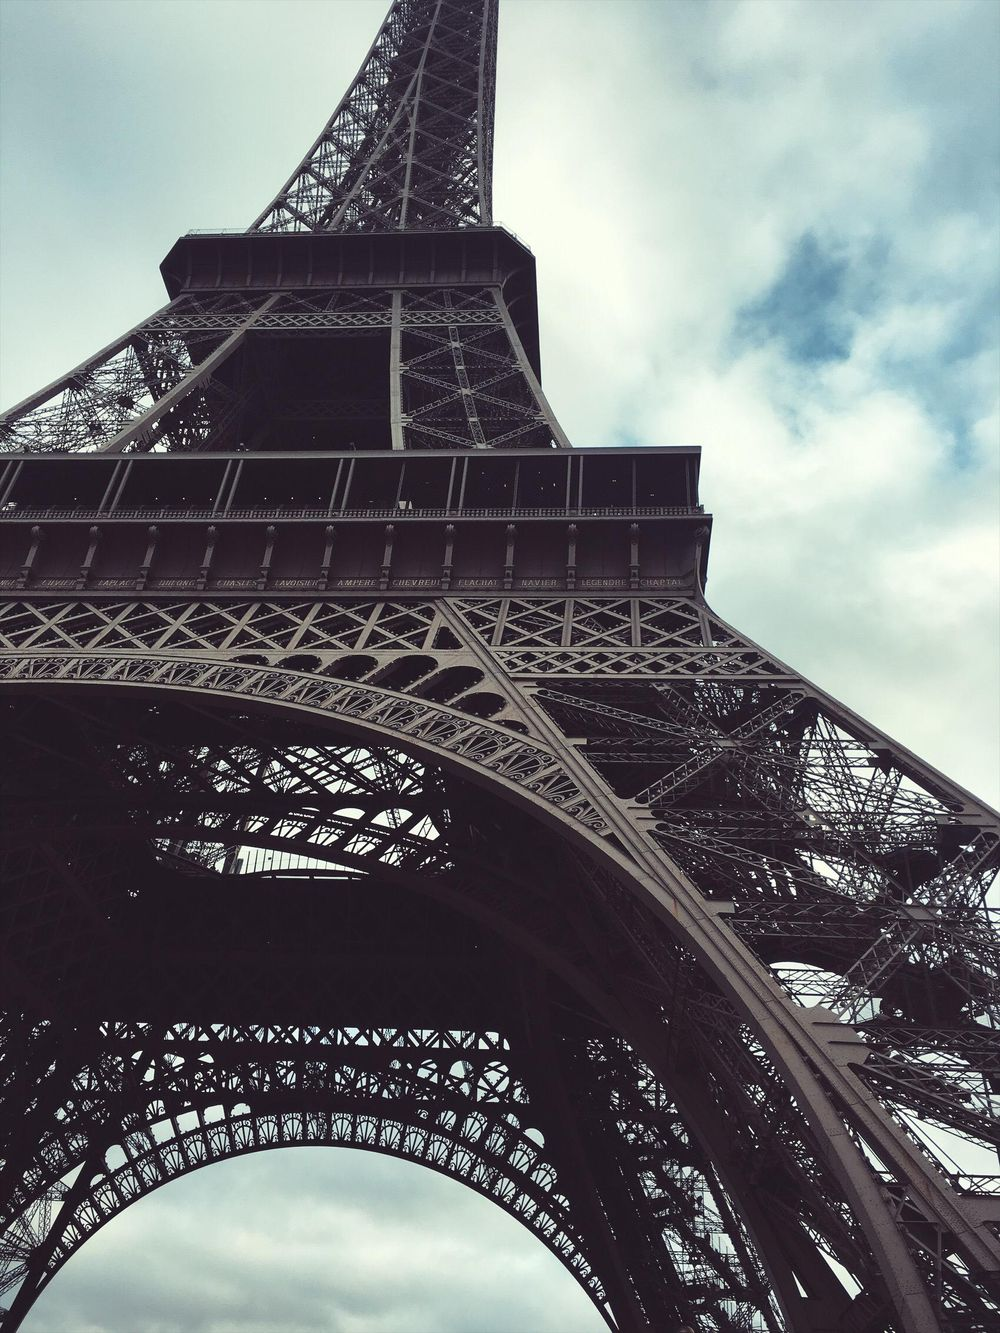 Eiffel Tower - image 2 - student project